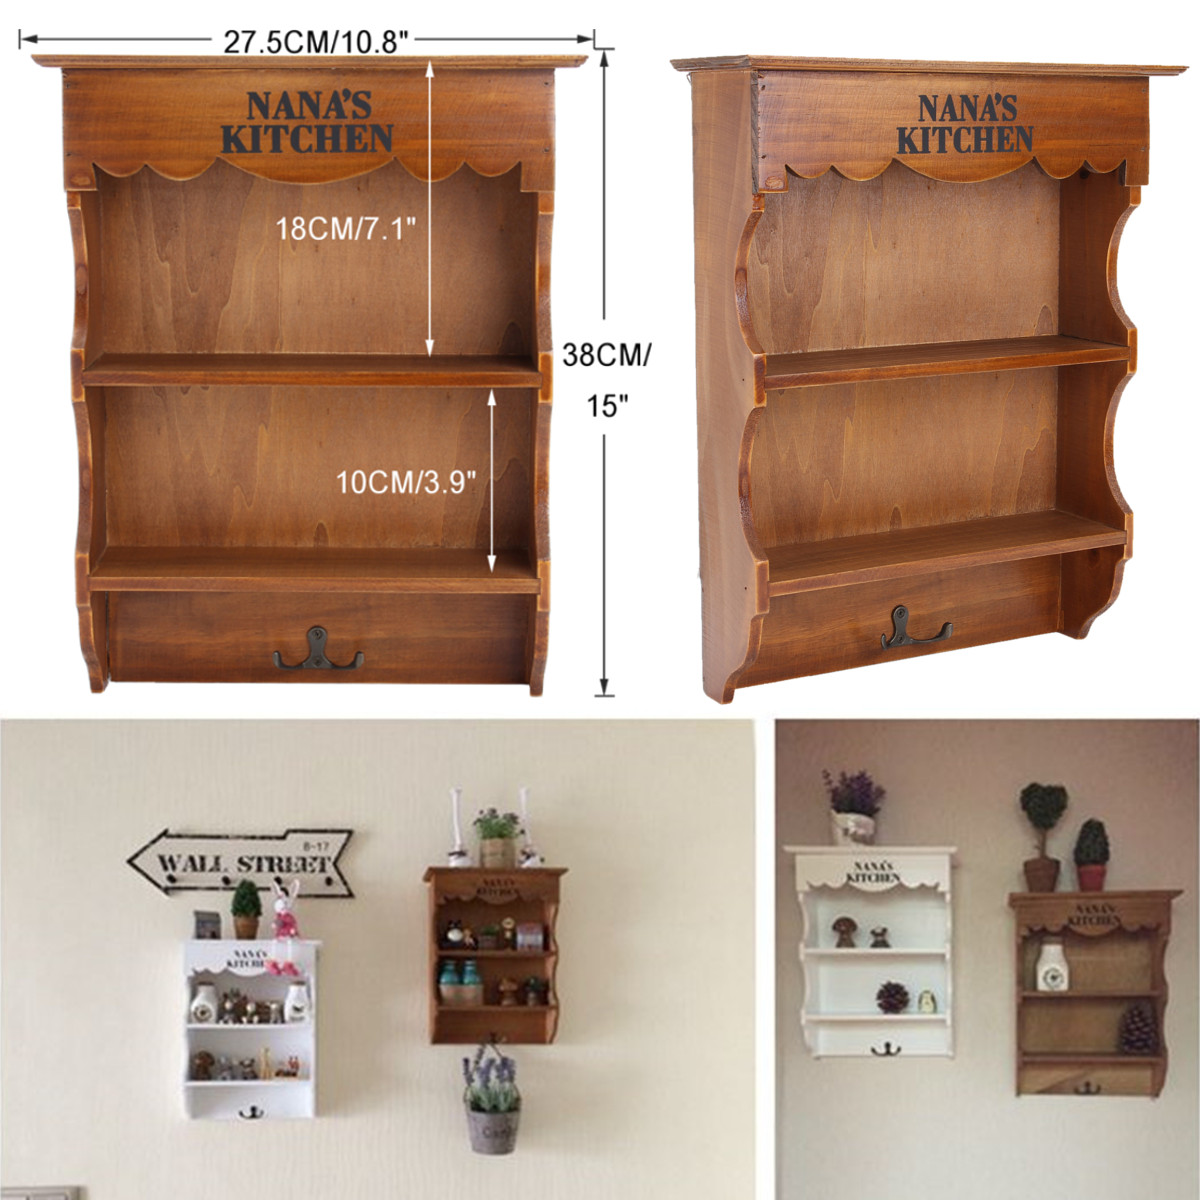 Vintage Wood Mini Dresser Wall Shelf Chic Country Kitchen Hook Spice Rack Home Storage Decorations